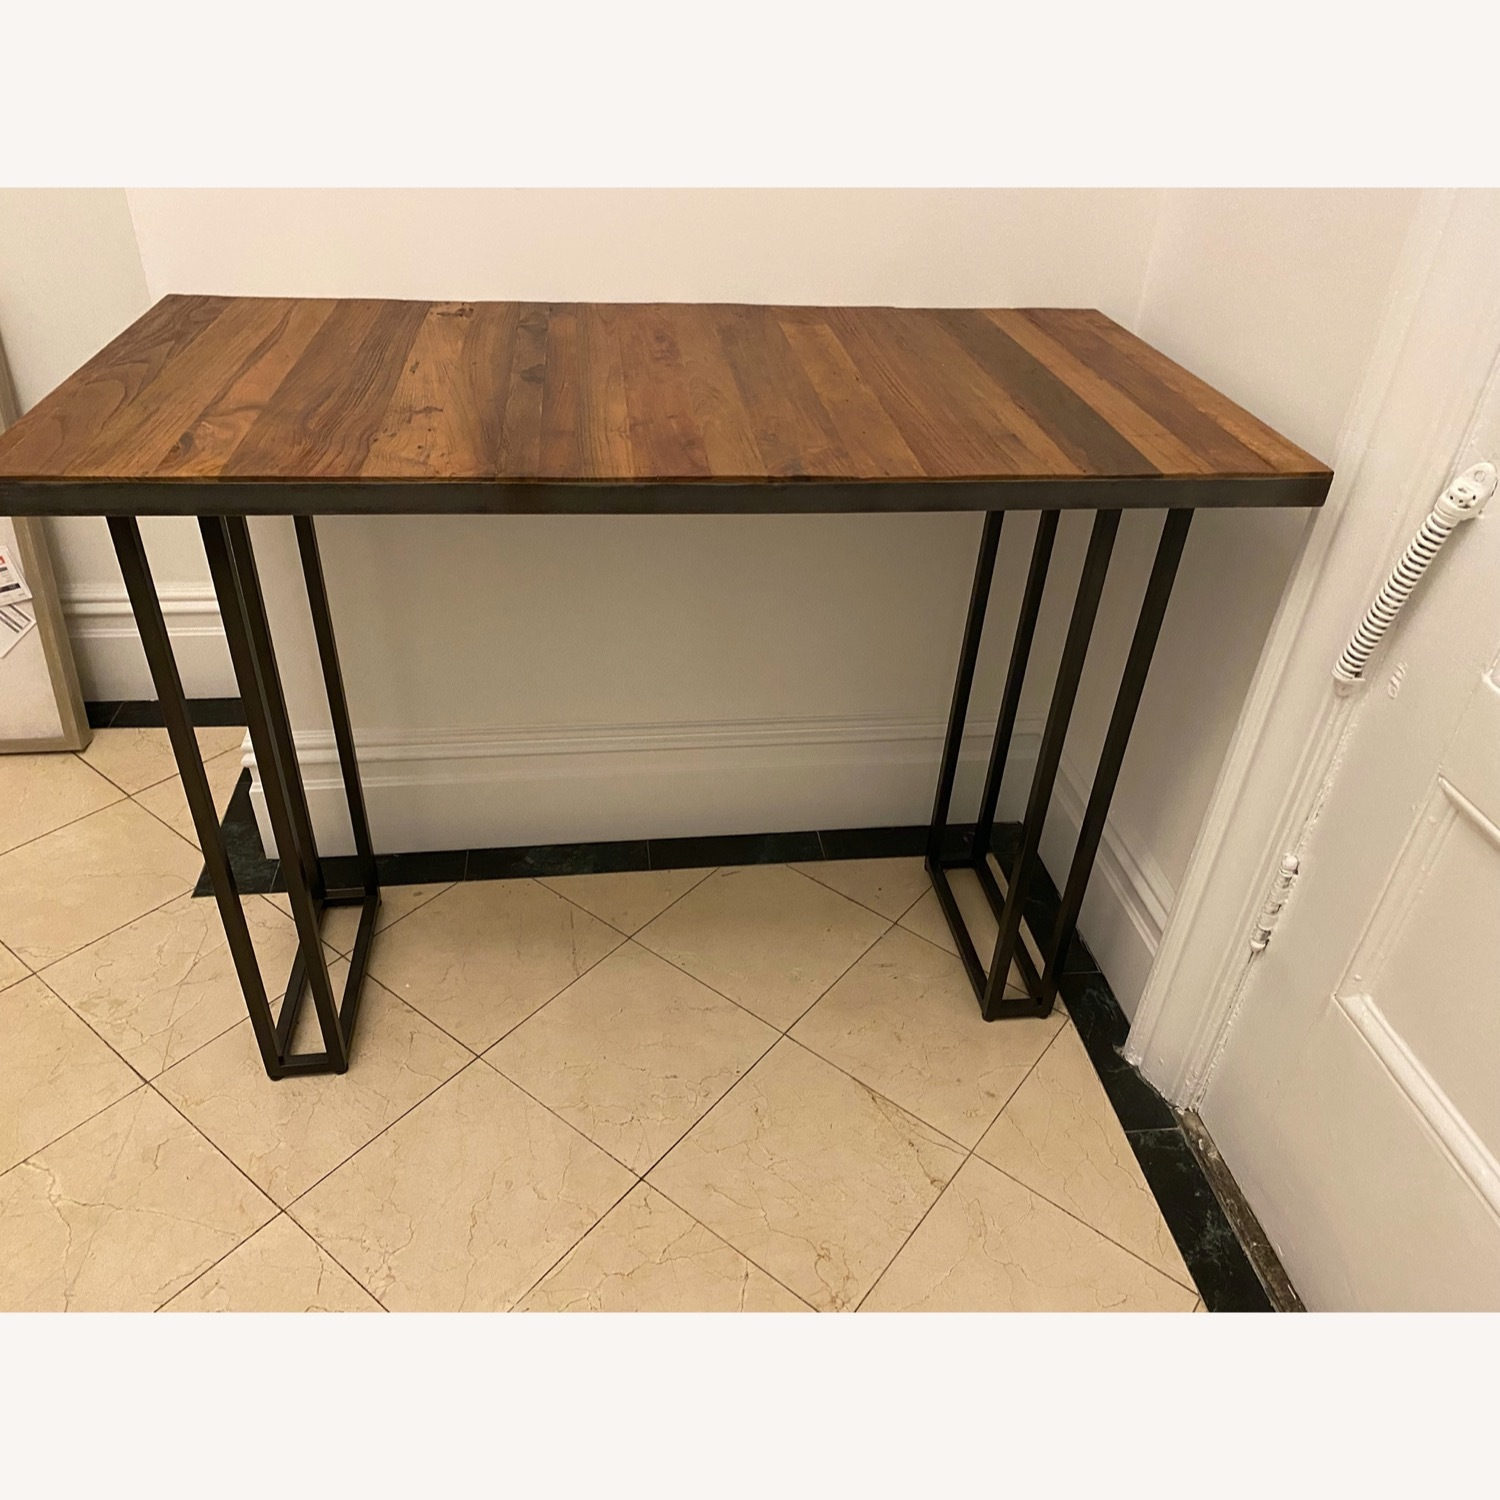 From The Source Custom Teak Counter Height Table - image-1